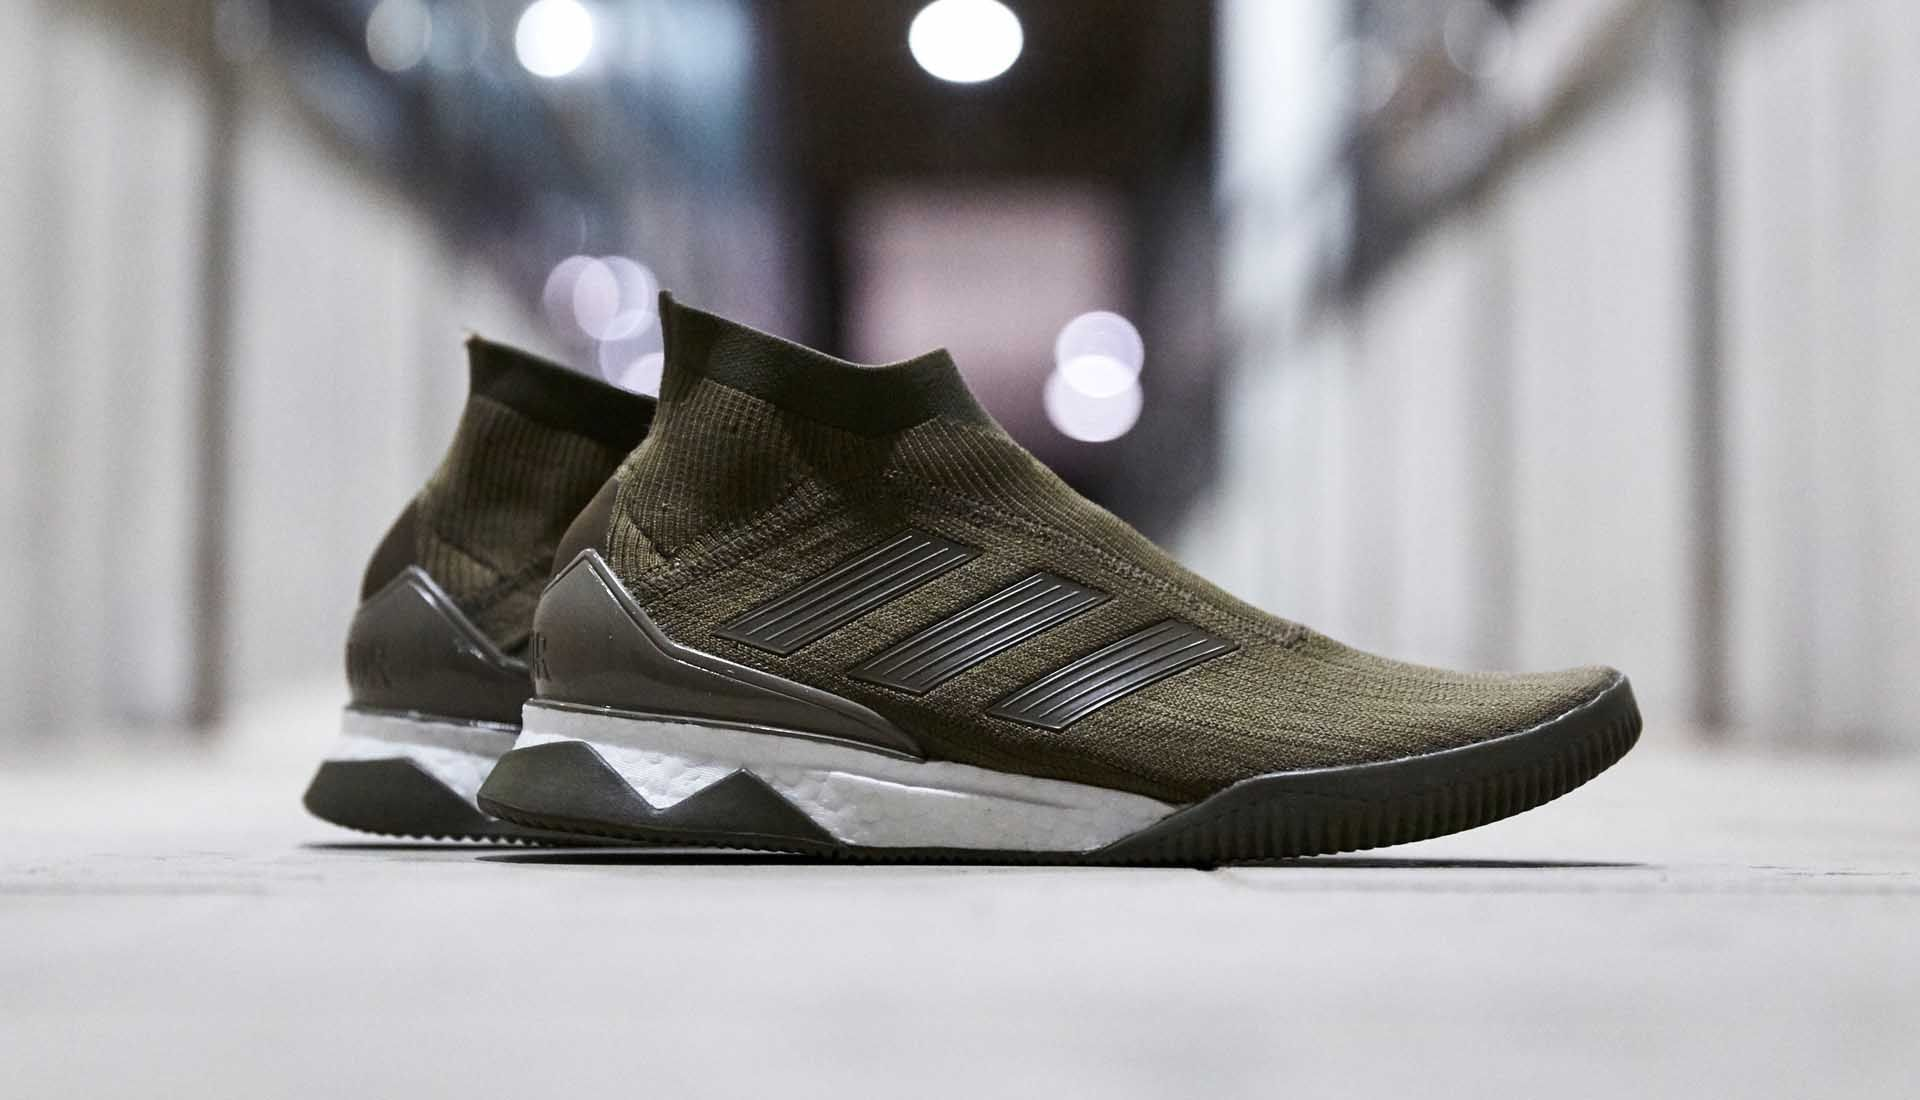 d15f09edfadf The second colourway of Predator Tango 18+ UltraBoost drops in a